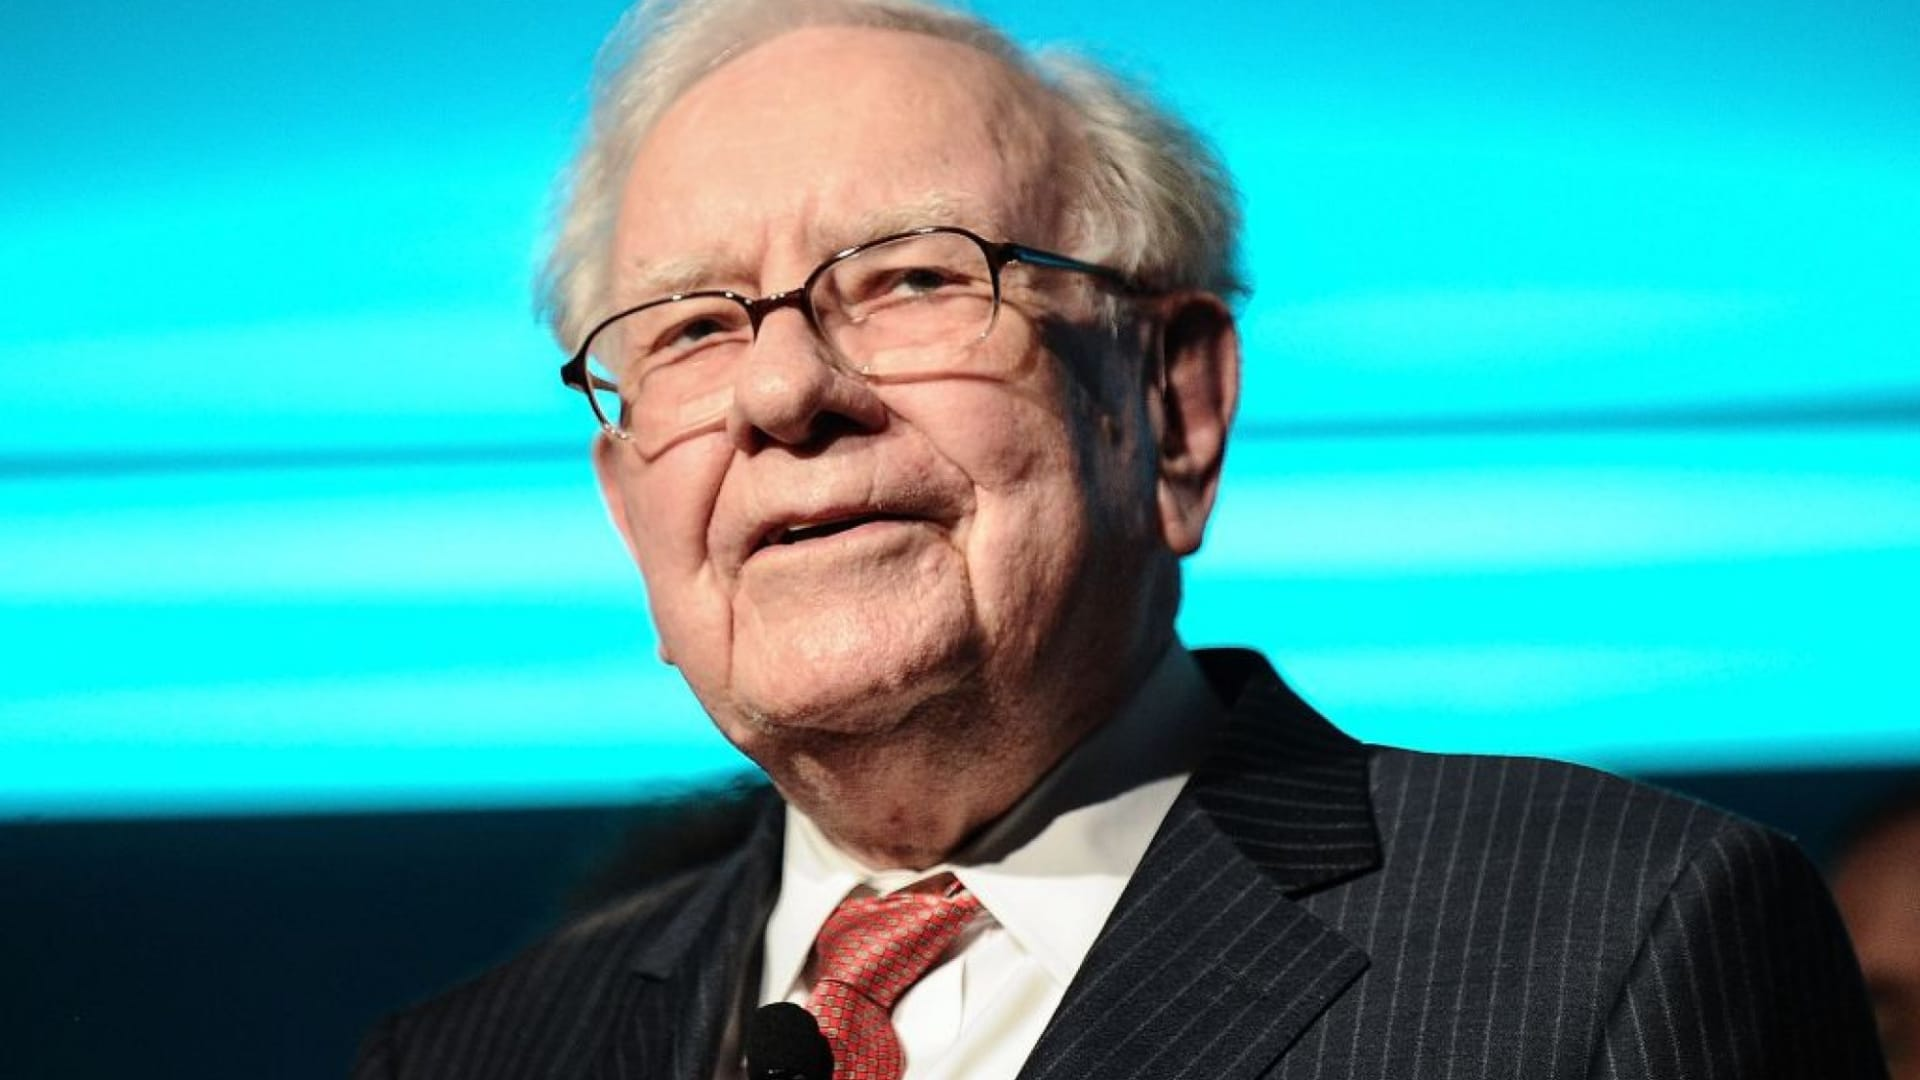 Warren Buffett Just Taught an Incredible Lesson in Emotional Intelligence. (Actually, 3 Lessons)